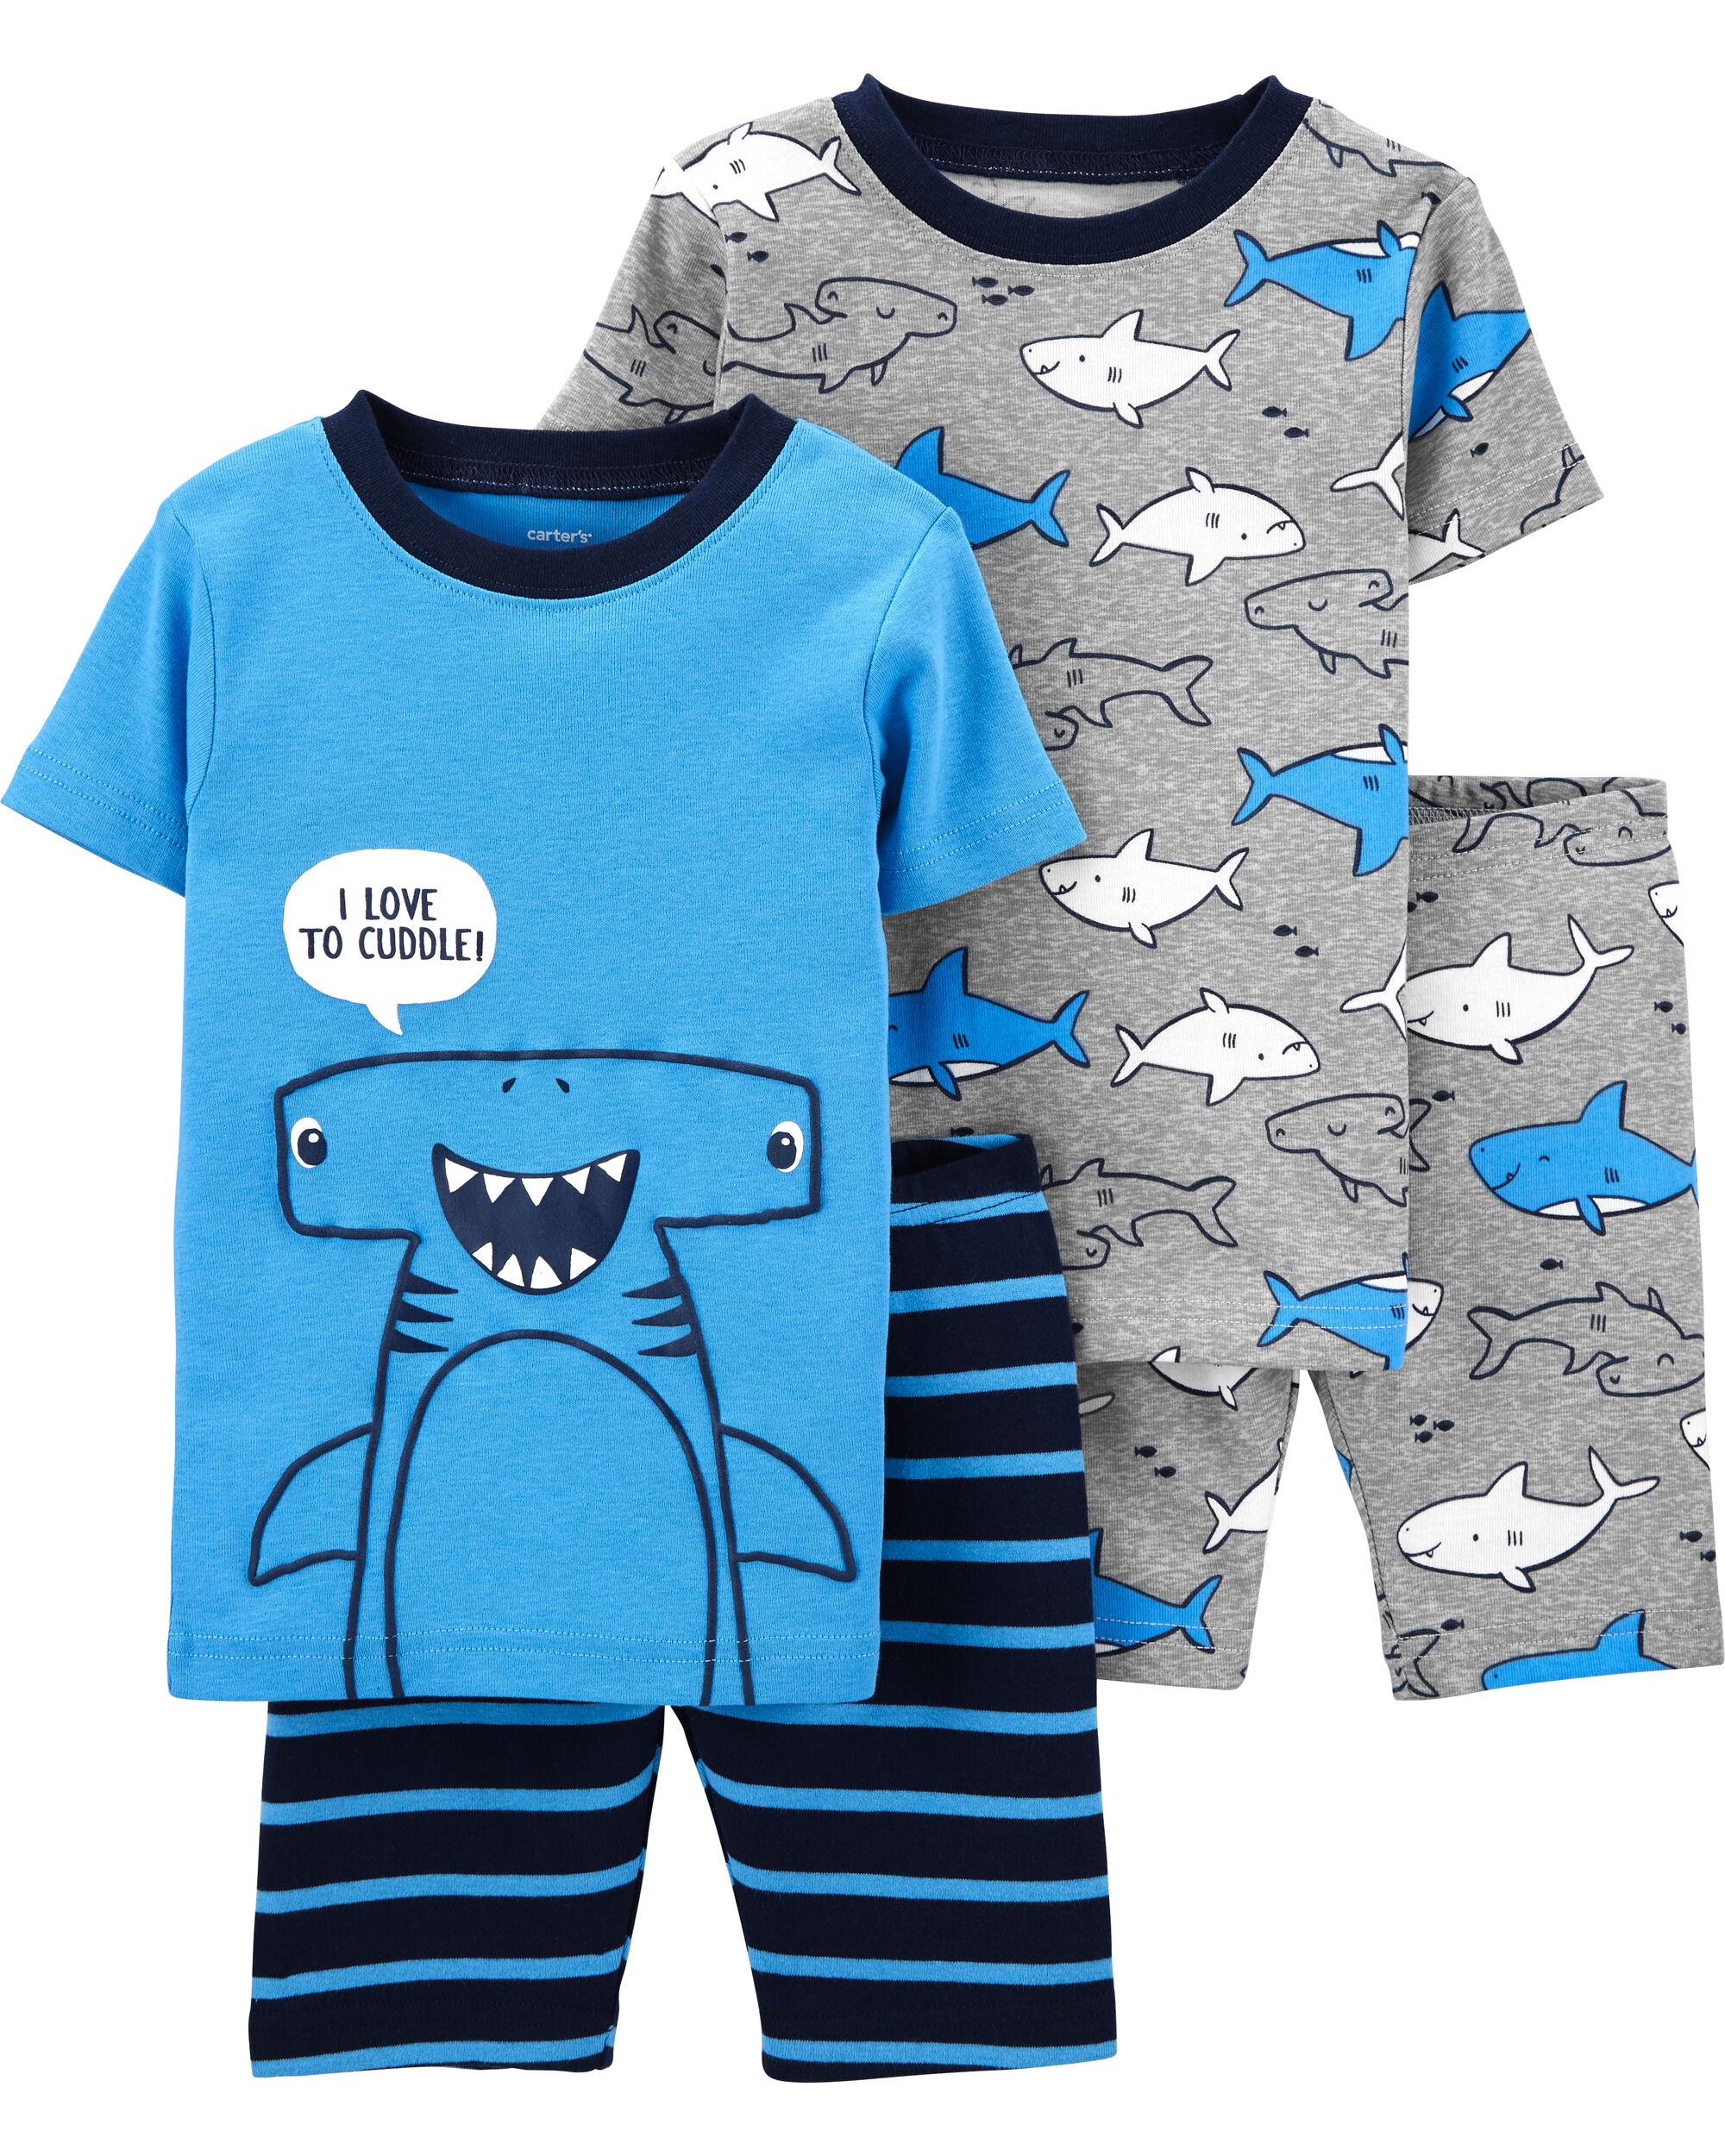 Skateboard Beach, L 14 Tee /& Shorts Saint Eve Kids/' Boys 3-Piece PJ Set Tank